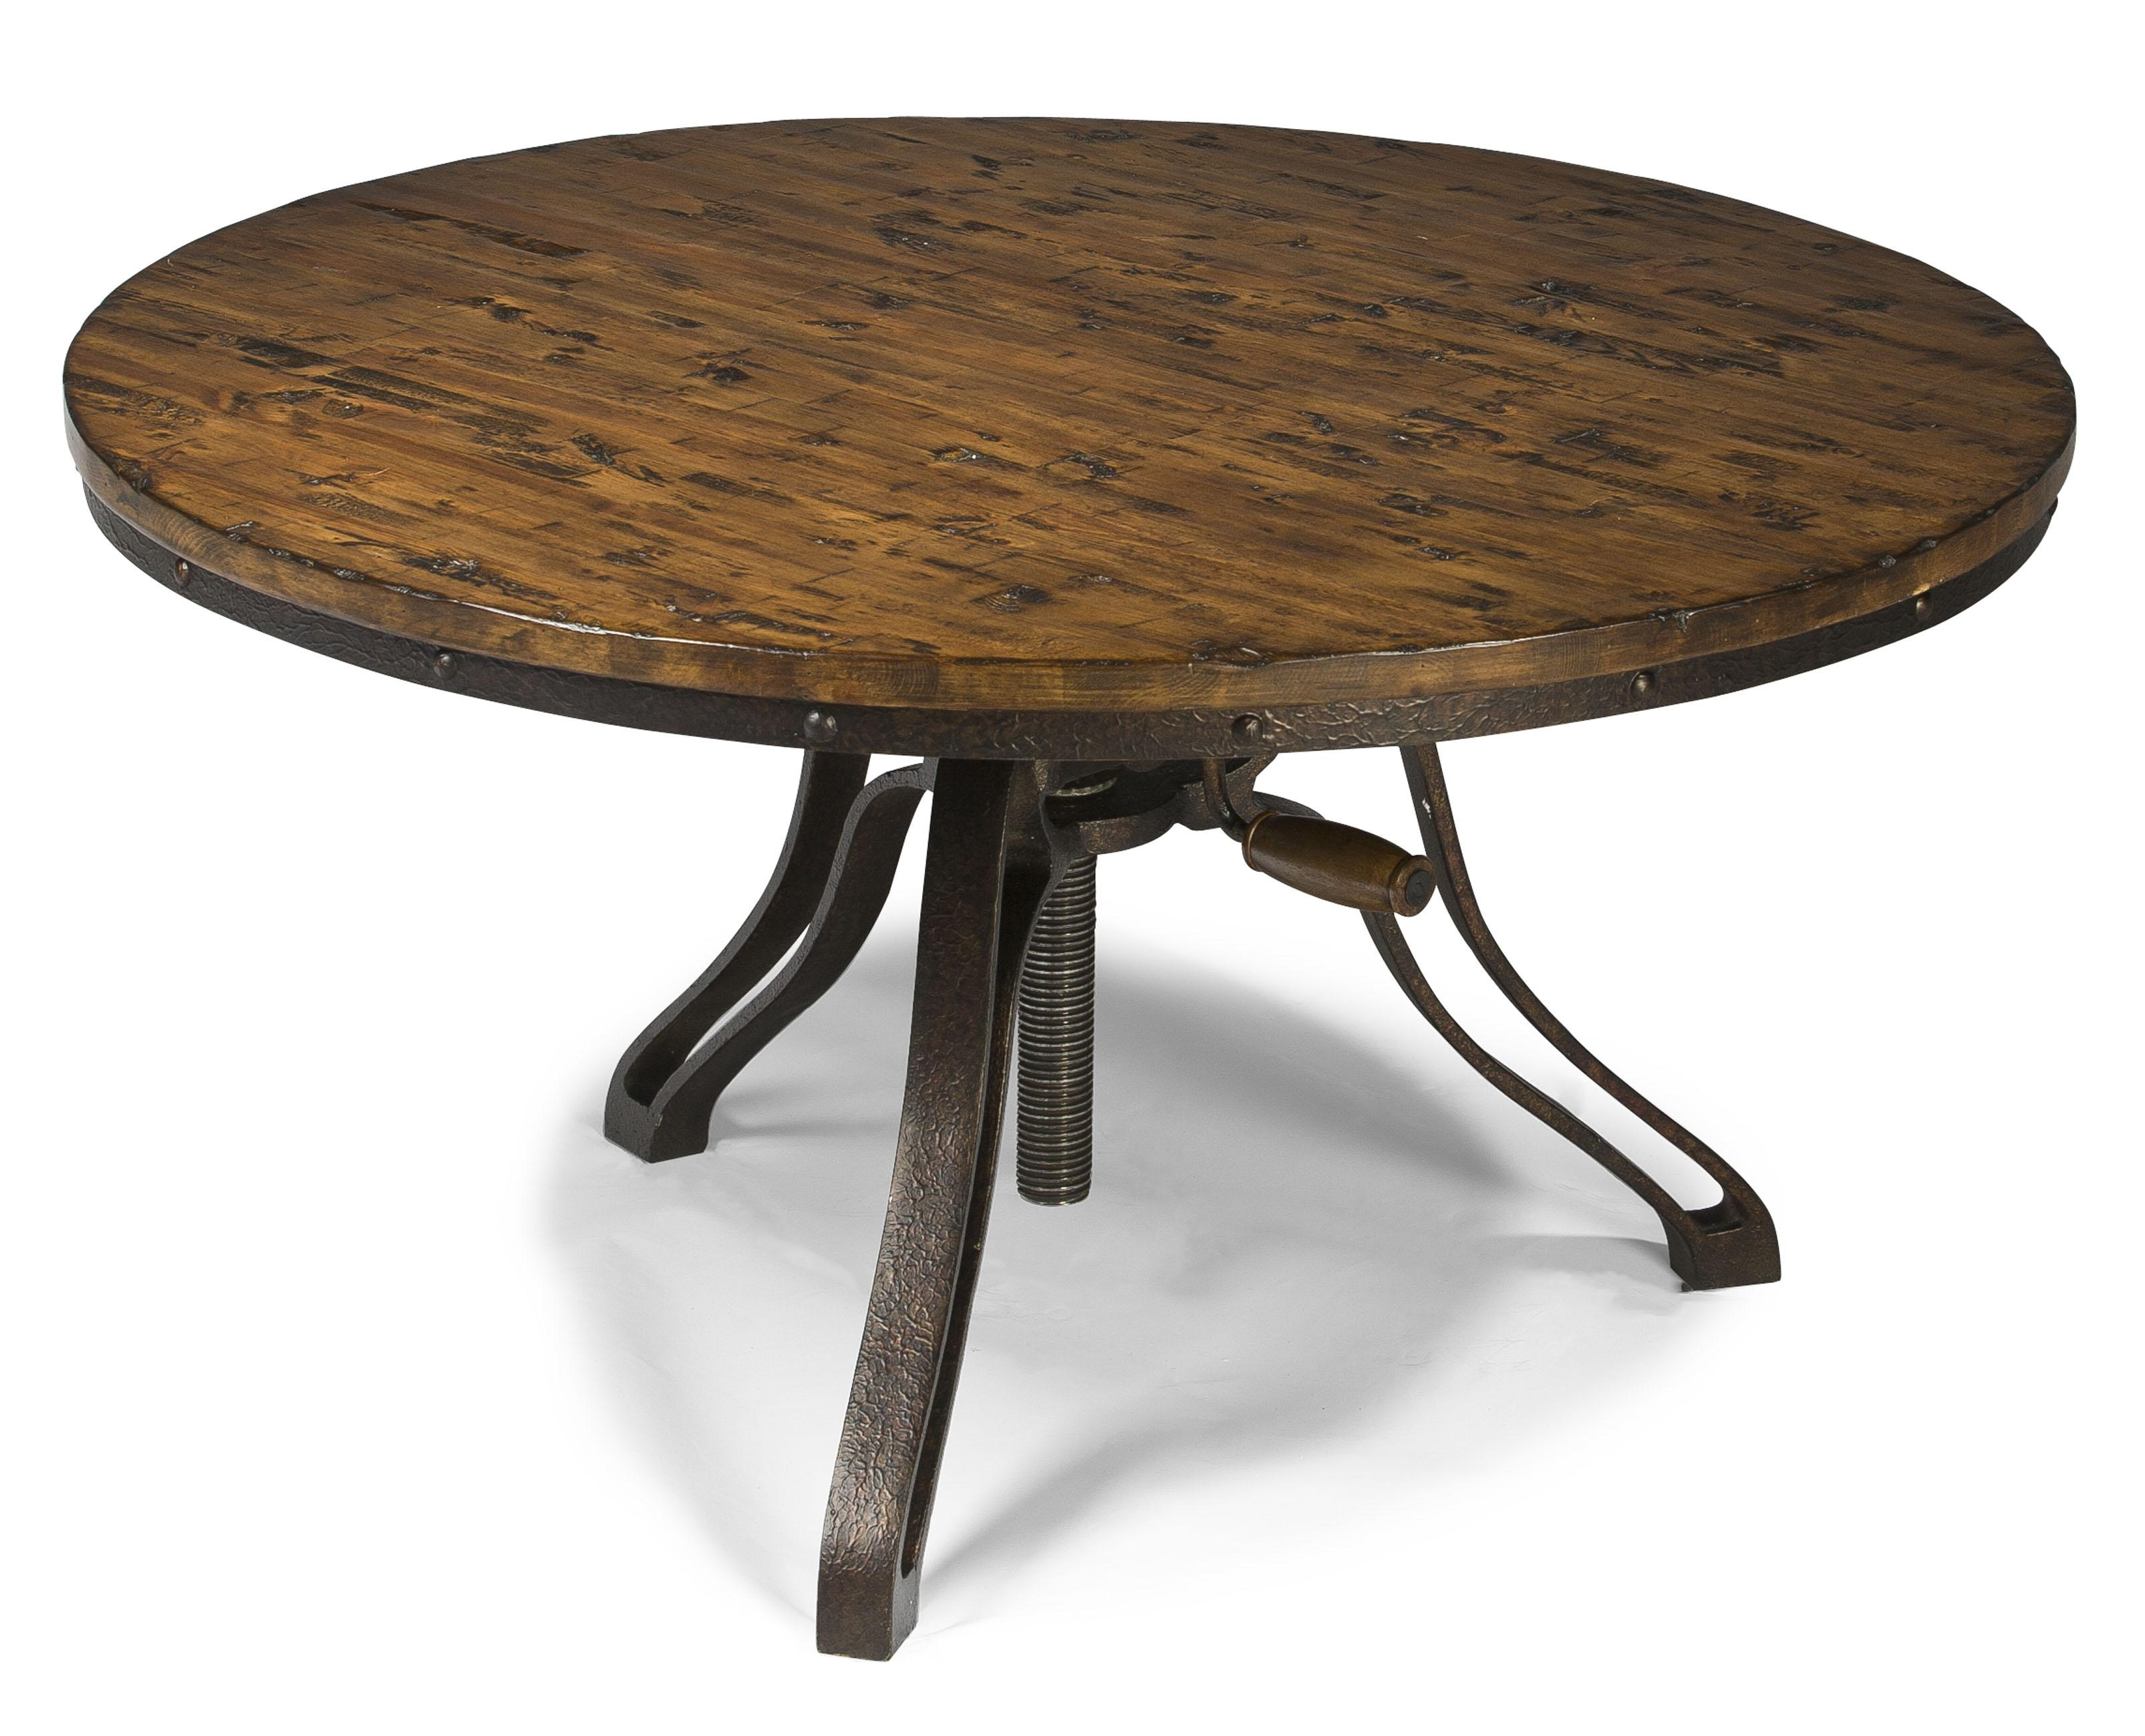 Industrial style round cocktail table with adjustable height Coffee table to dining table